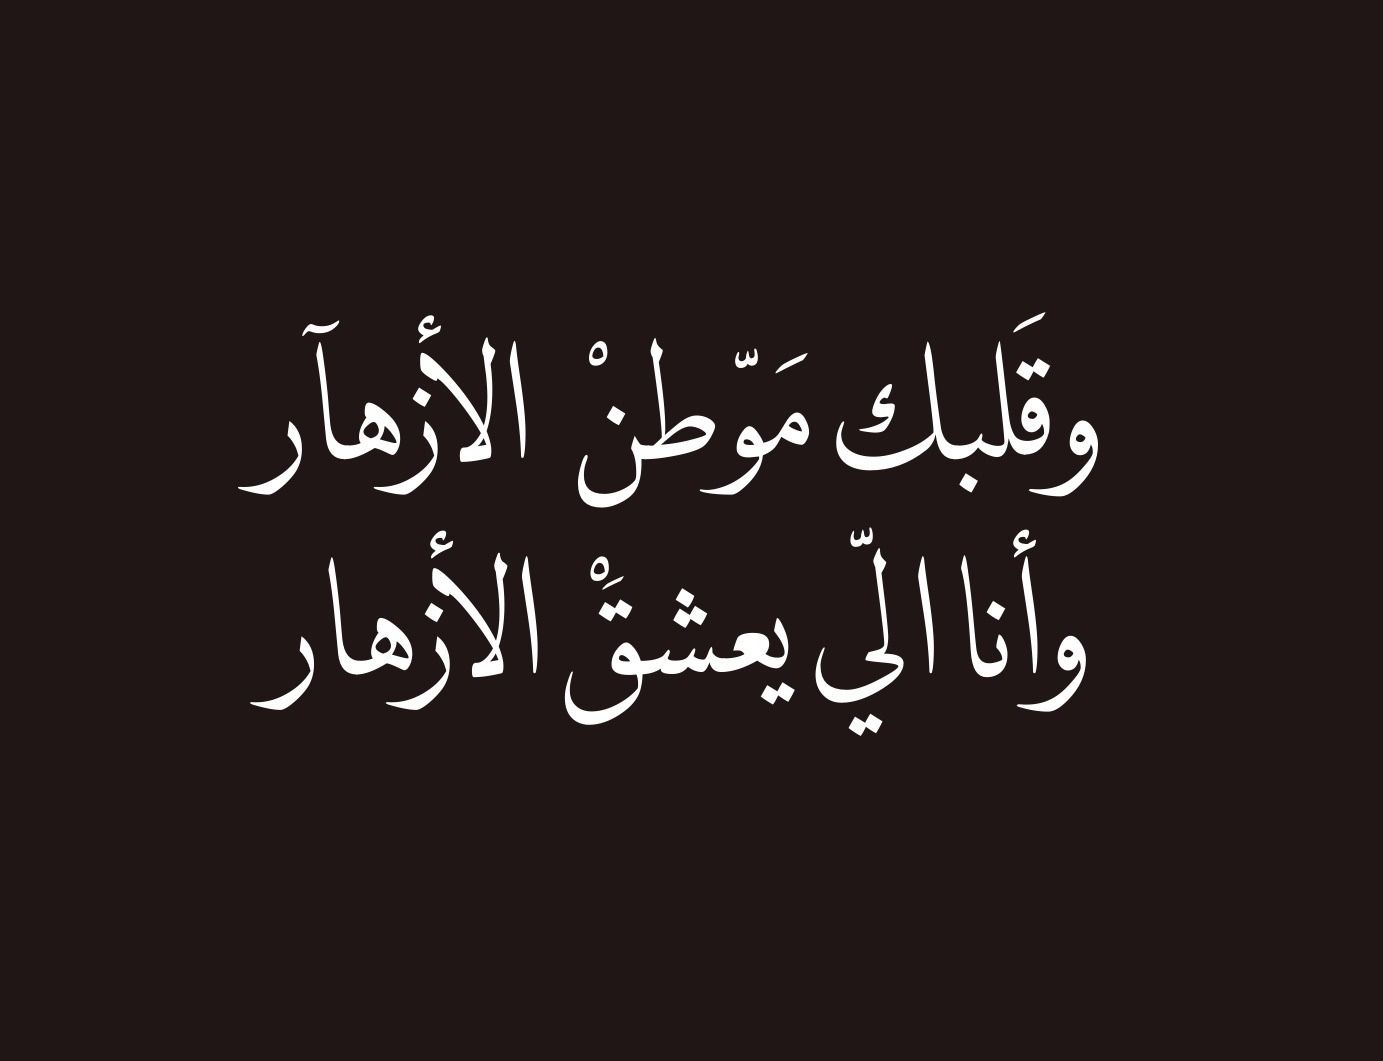 Pin By On ابـو نـوره Words Quotes Beautiful Arabic Words Words